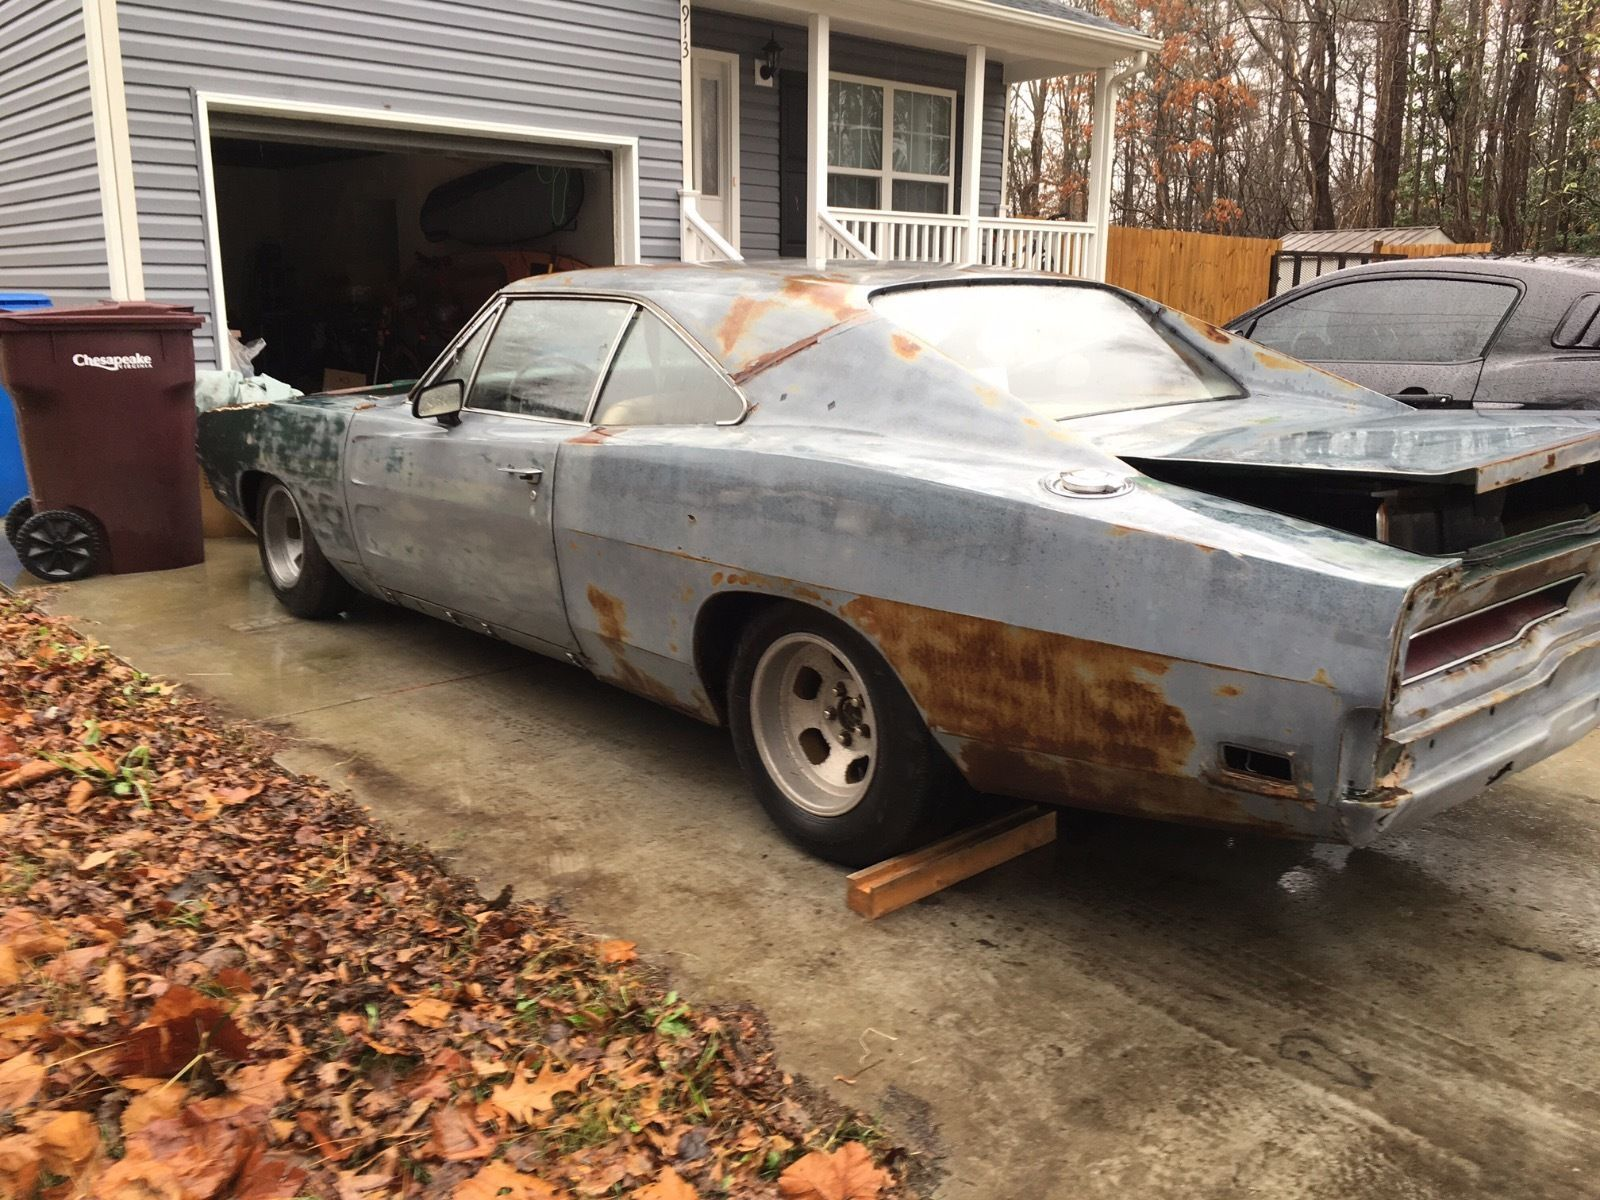 1969 Dodge Charger Ebay 1969 Dodge Charger Dodge Charger Barn Find Cars